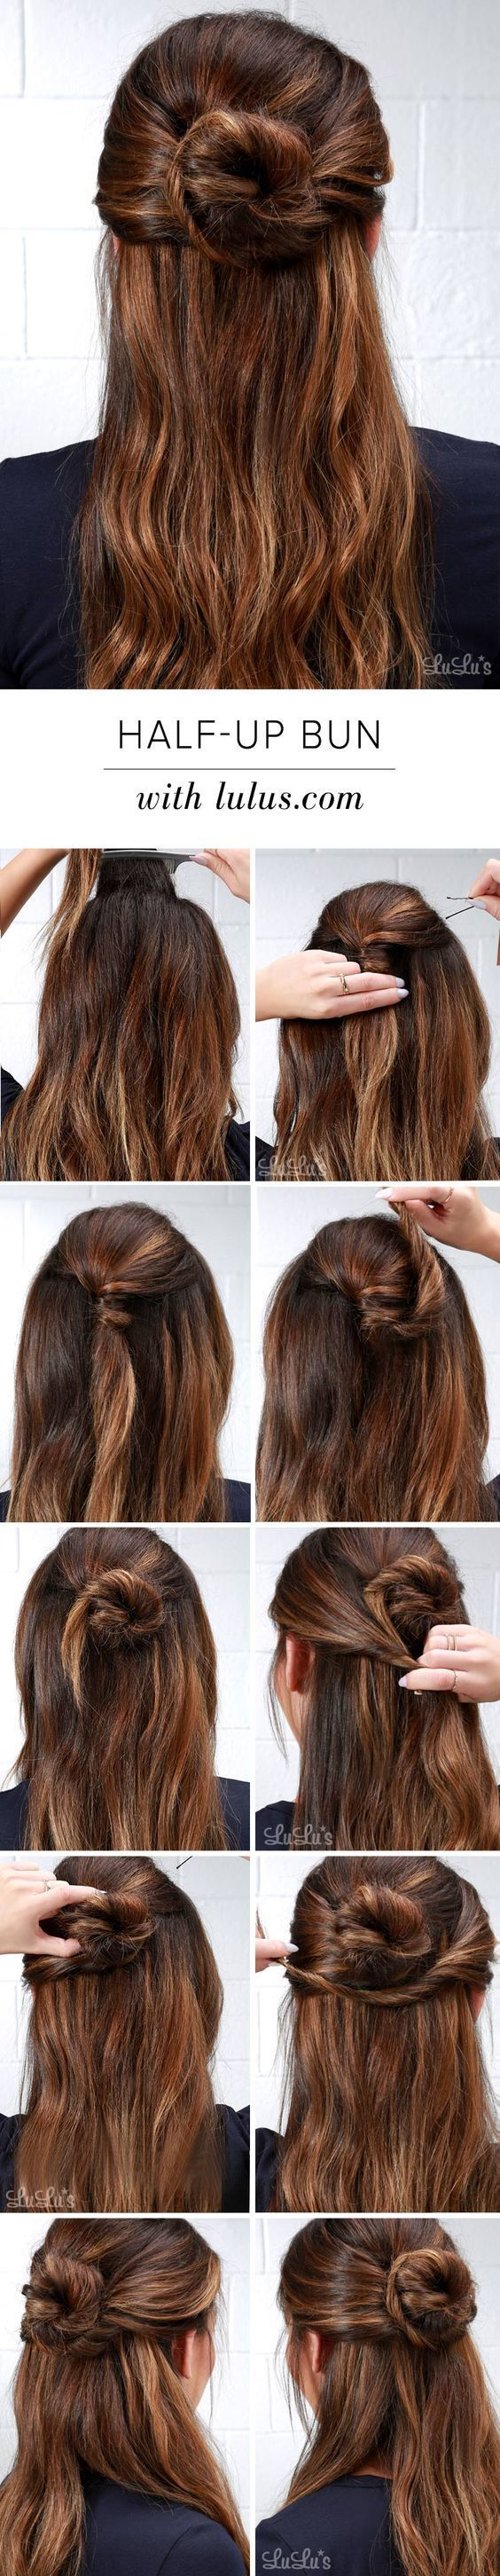 See the latest hairstyles on our tumblr itus awsome hair styles